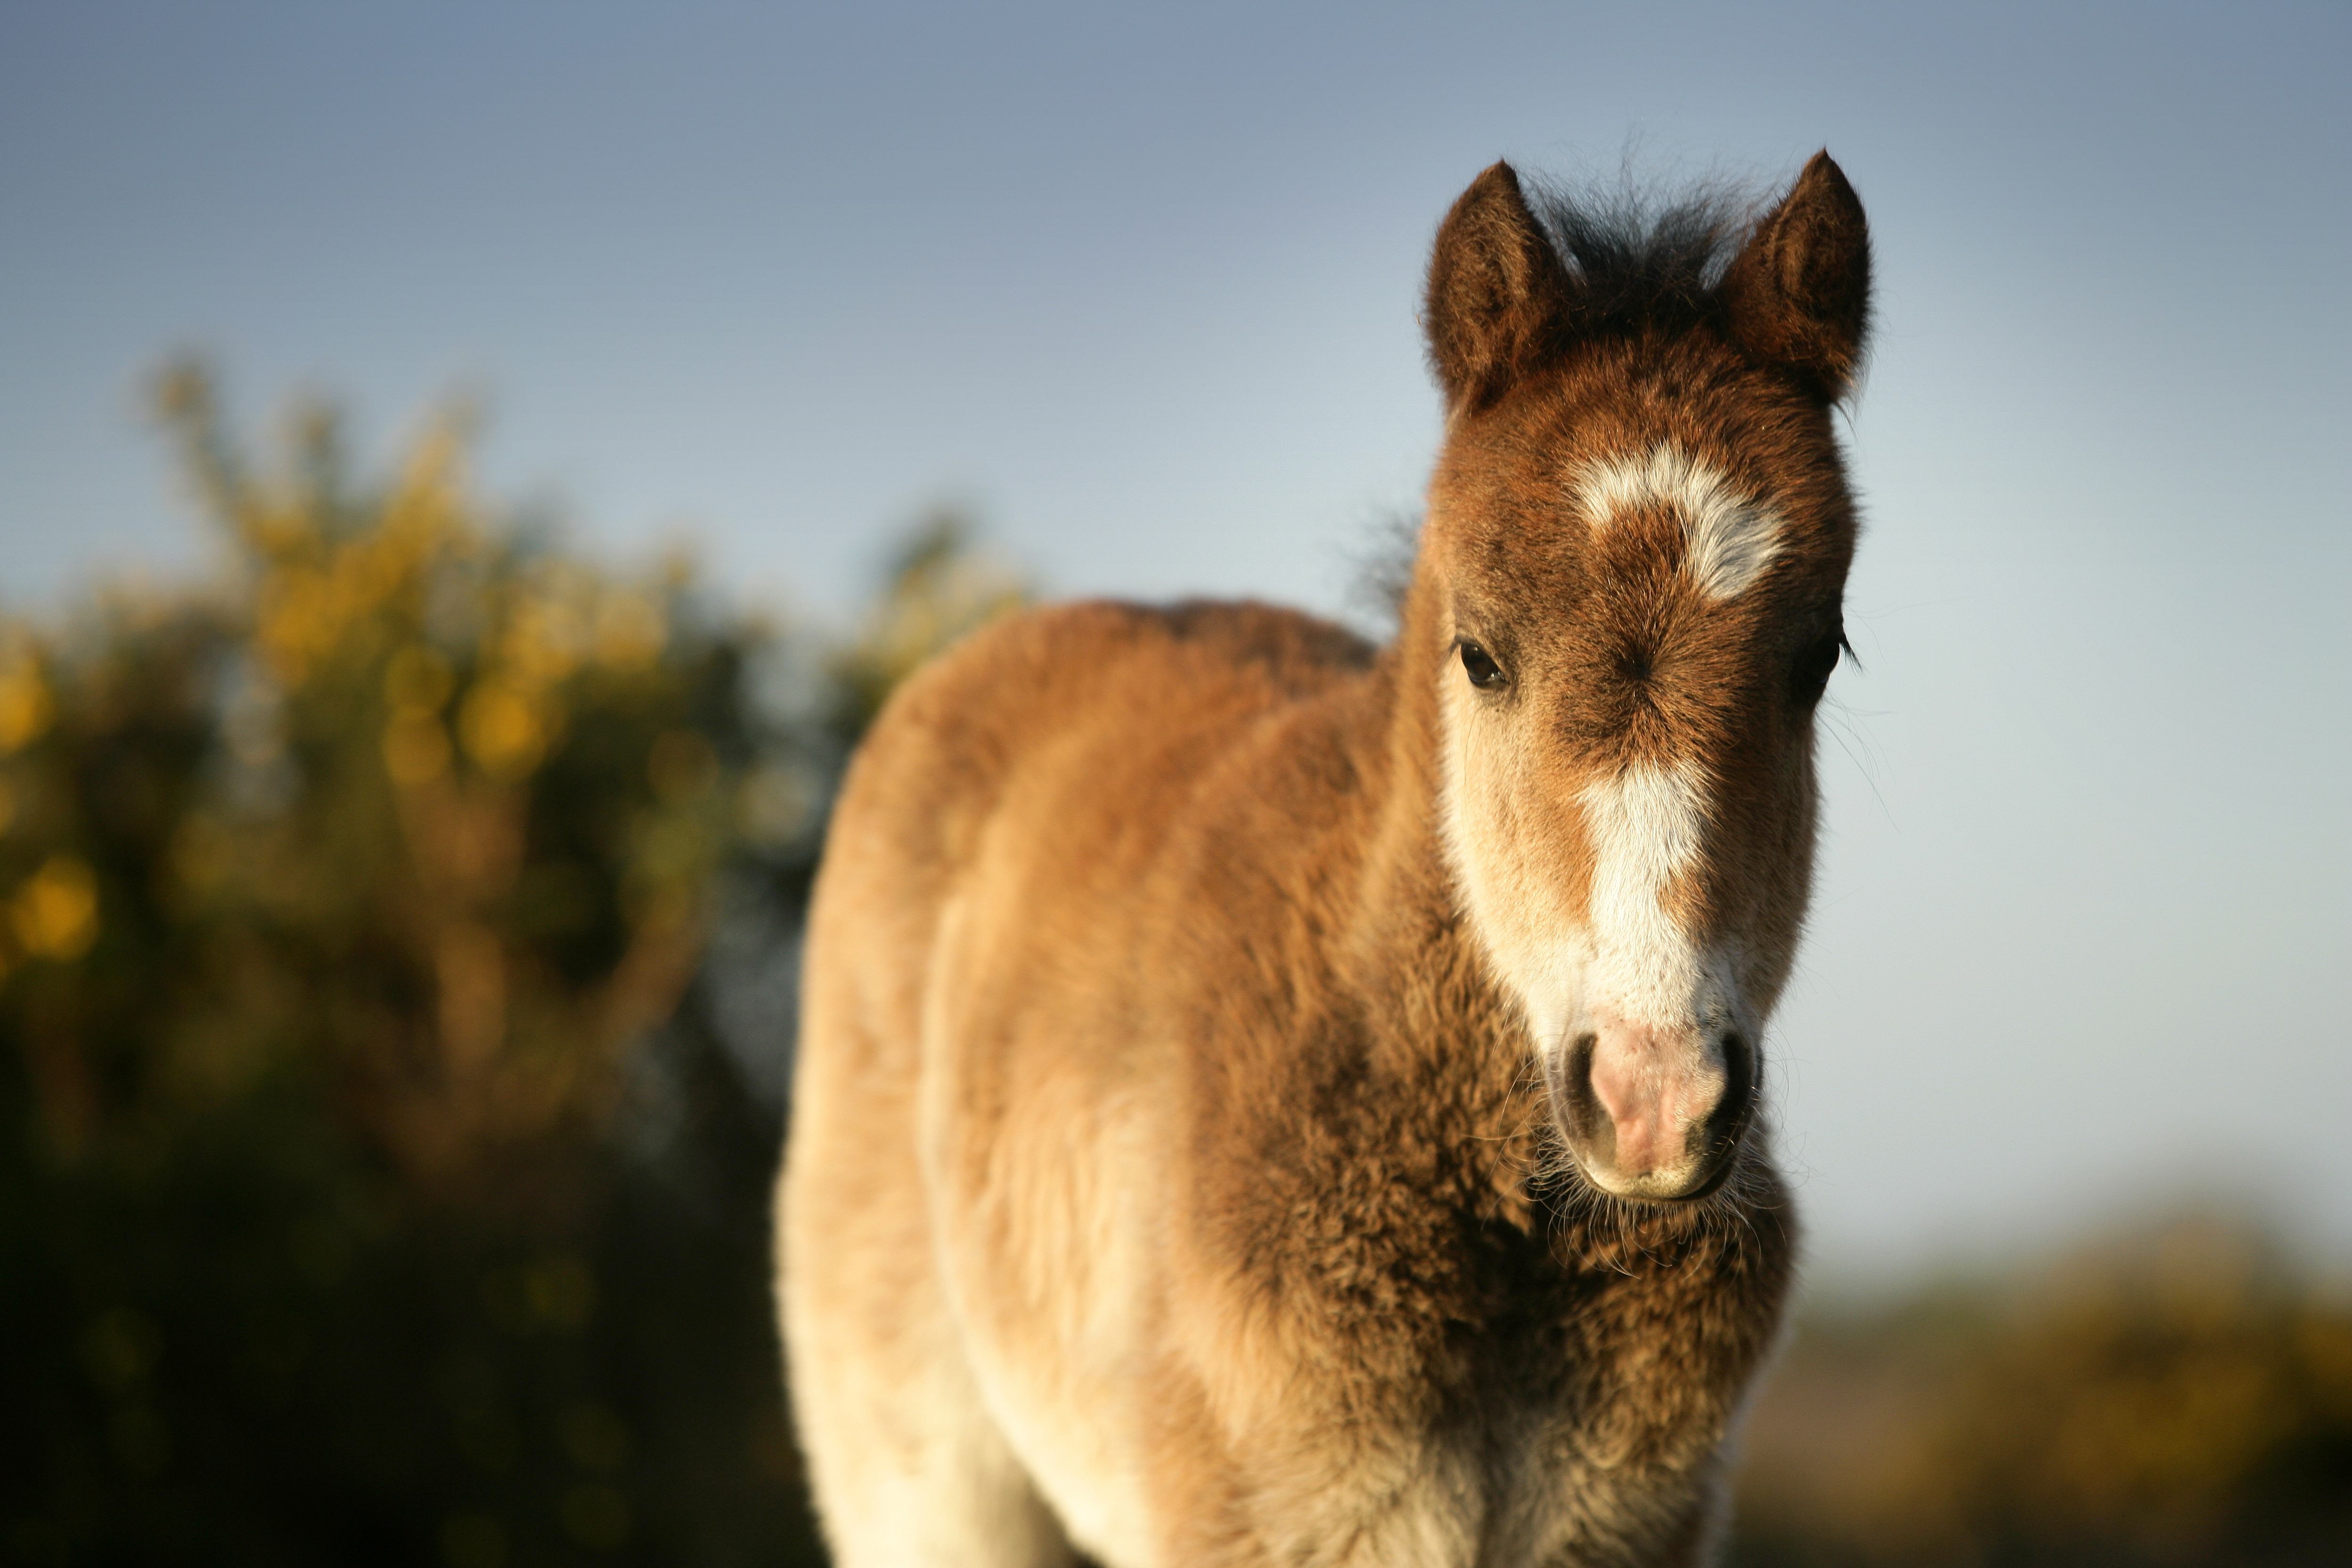 New born new forest foal